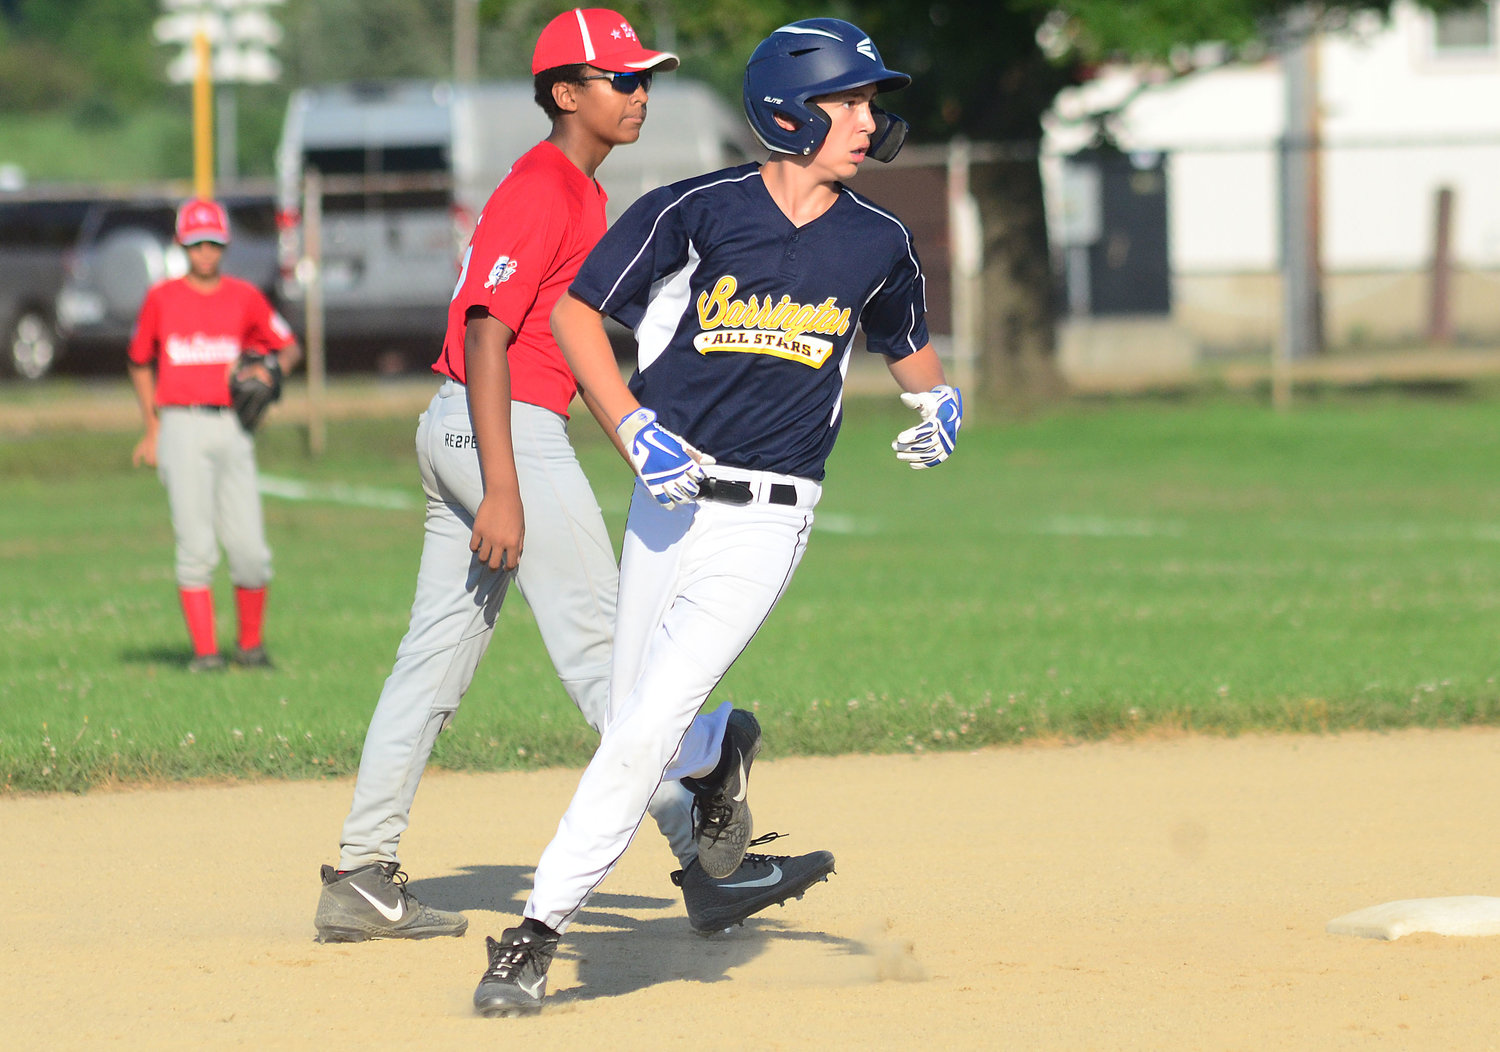 Barrington's Nick Scandura rounds second base during Monday's All-Star game at Barrington High School.